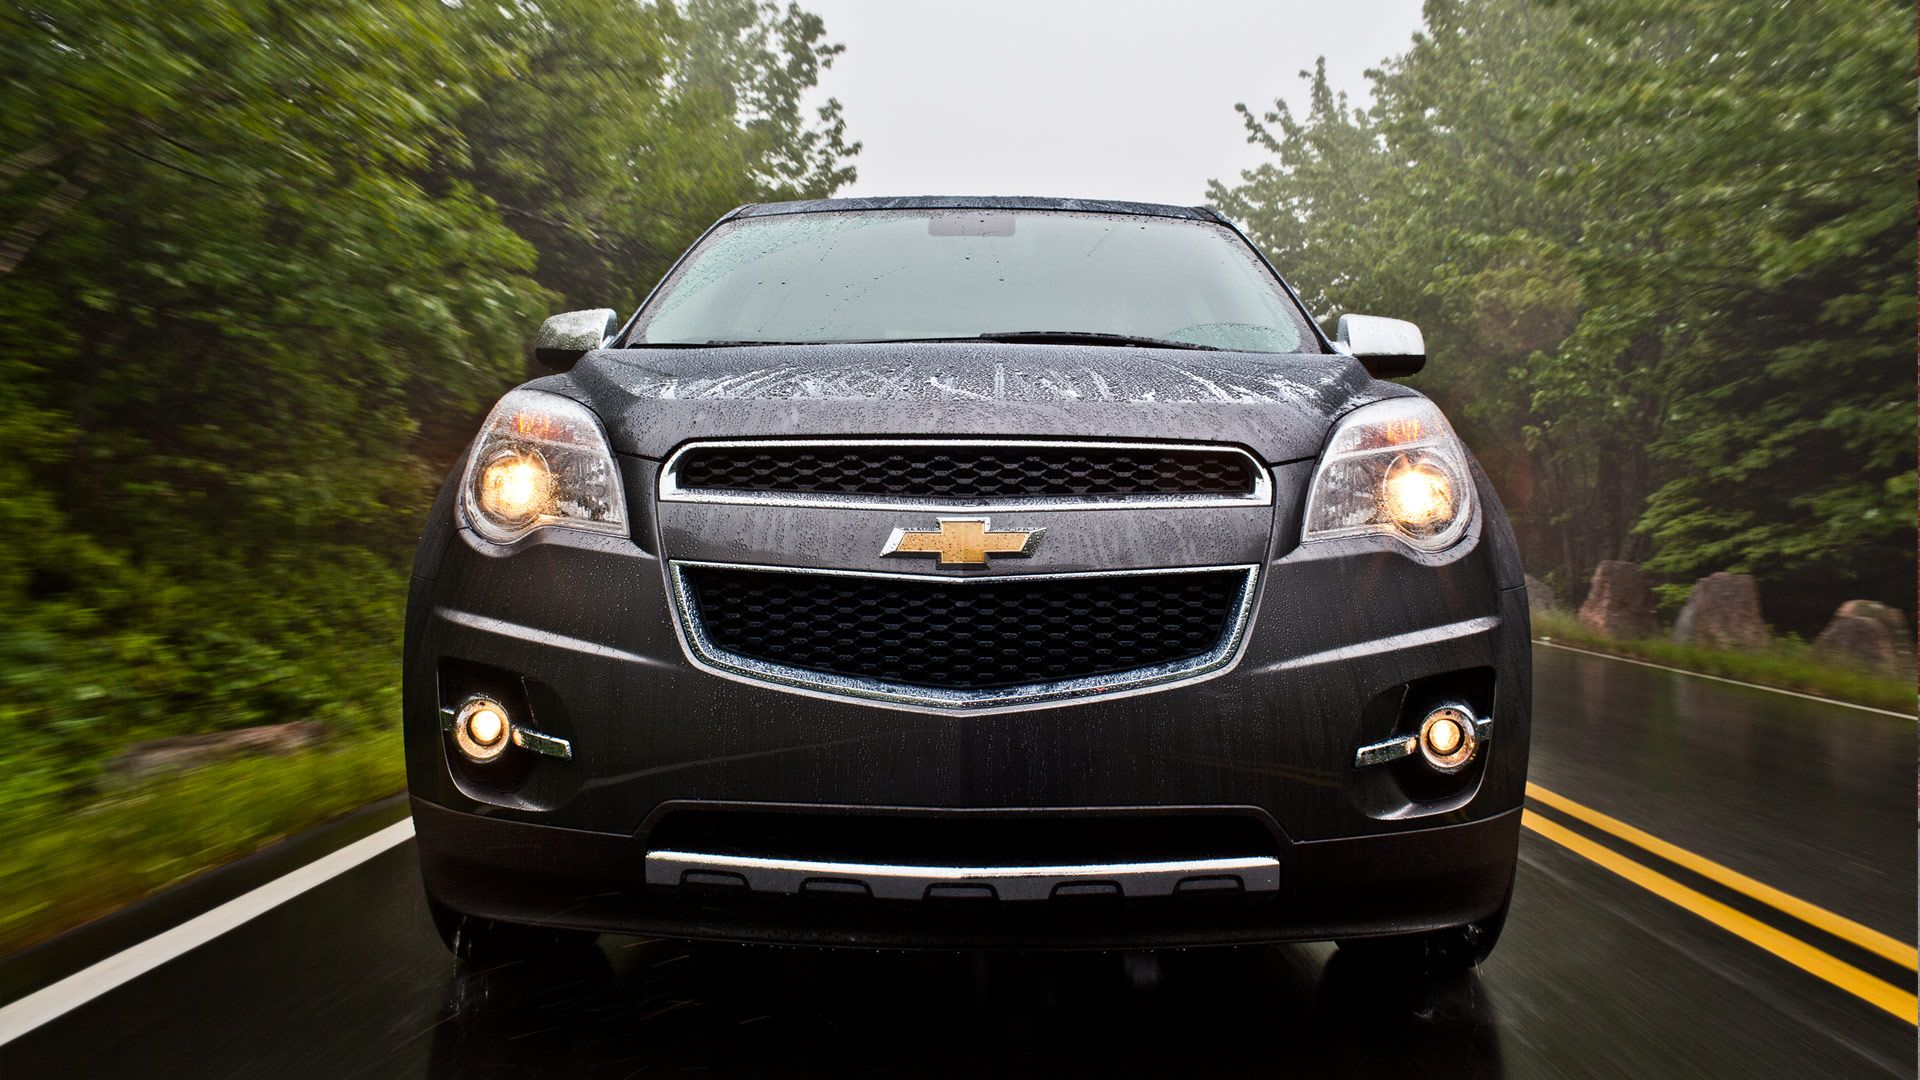 2013 Chevrolet Equinox Ltz Shown In Tungsten Metallic Features Chrome Accents And Uplevel Projector Style Headlamps Chevrolet Equinox Chevrolet Chevy Equinox